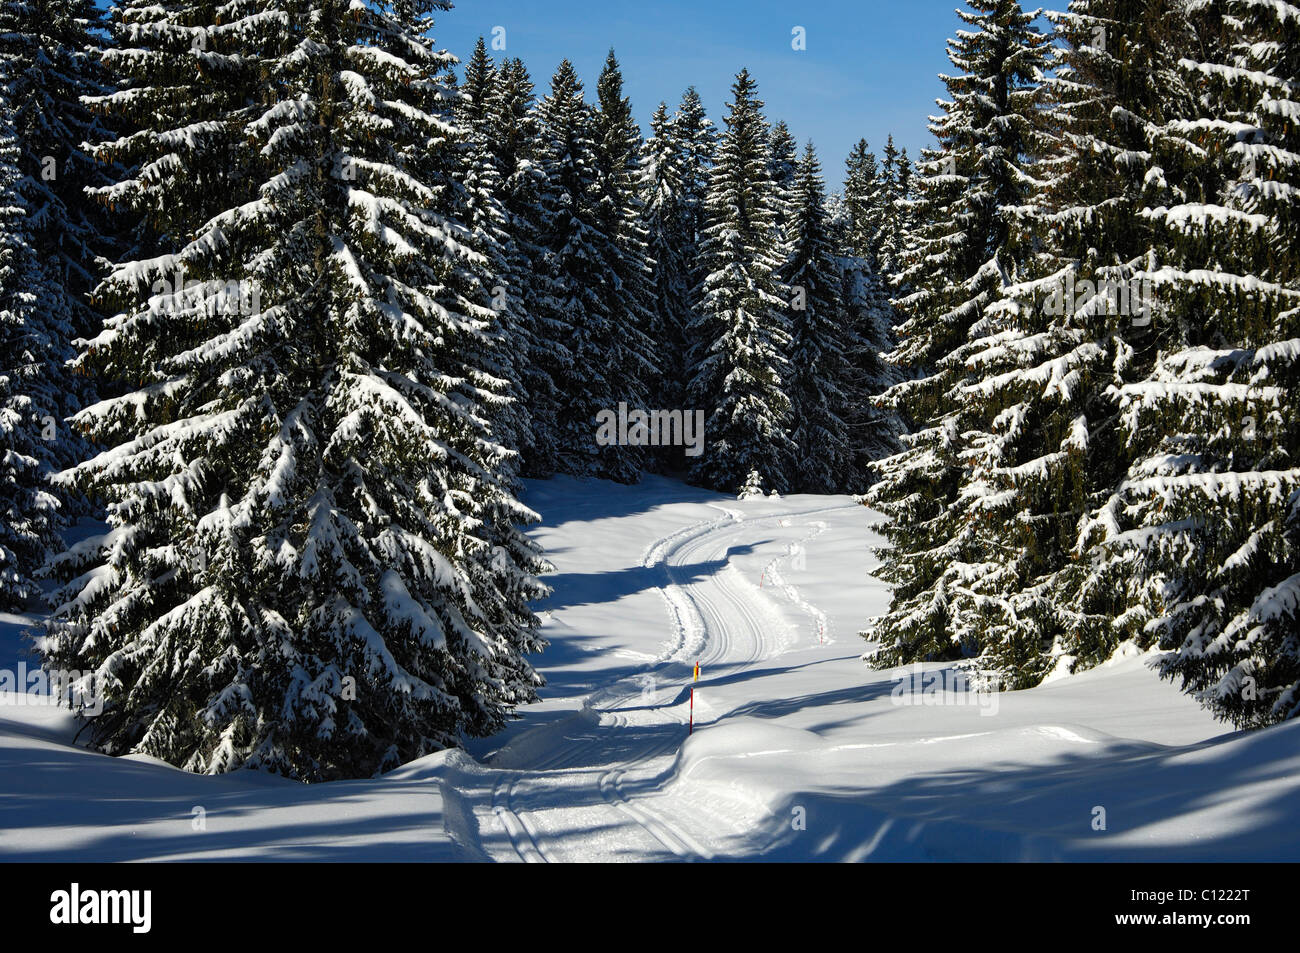 A deserted groomed cross-country ski trail passing through a snowy pine forest in the Jura Mountains, St. Cergue, - Stock Image